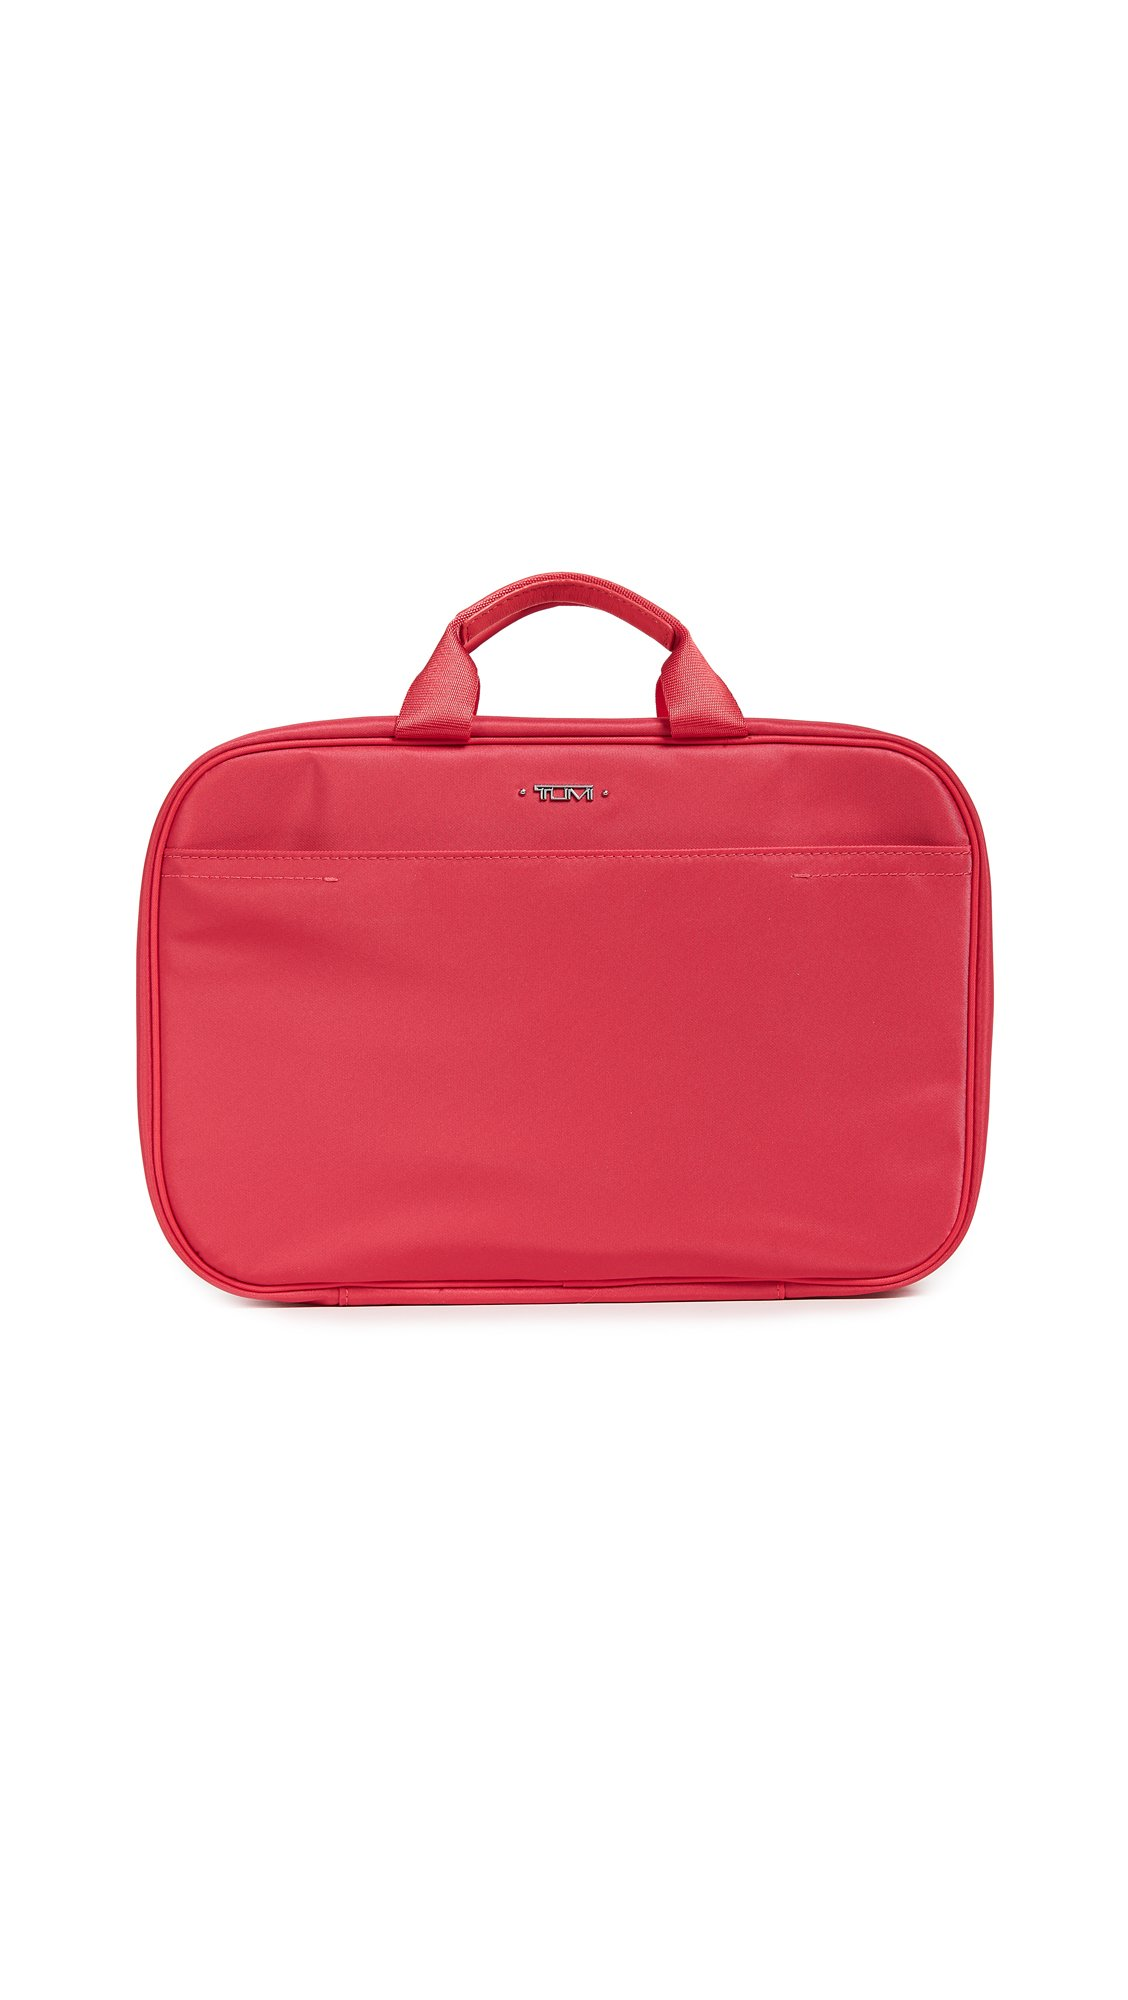 Tumi Women's Monaco Travel Kit, Hot Pink, One Size by Tumi